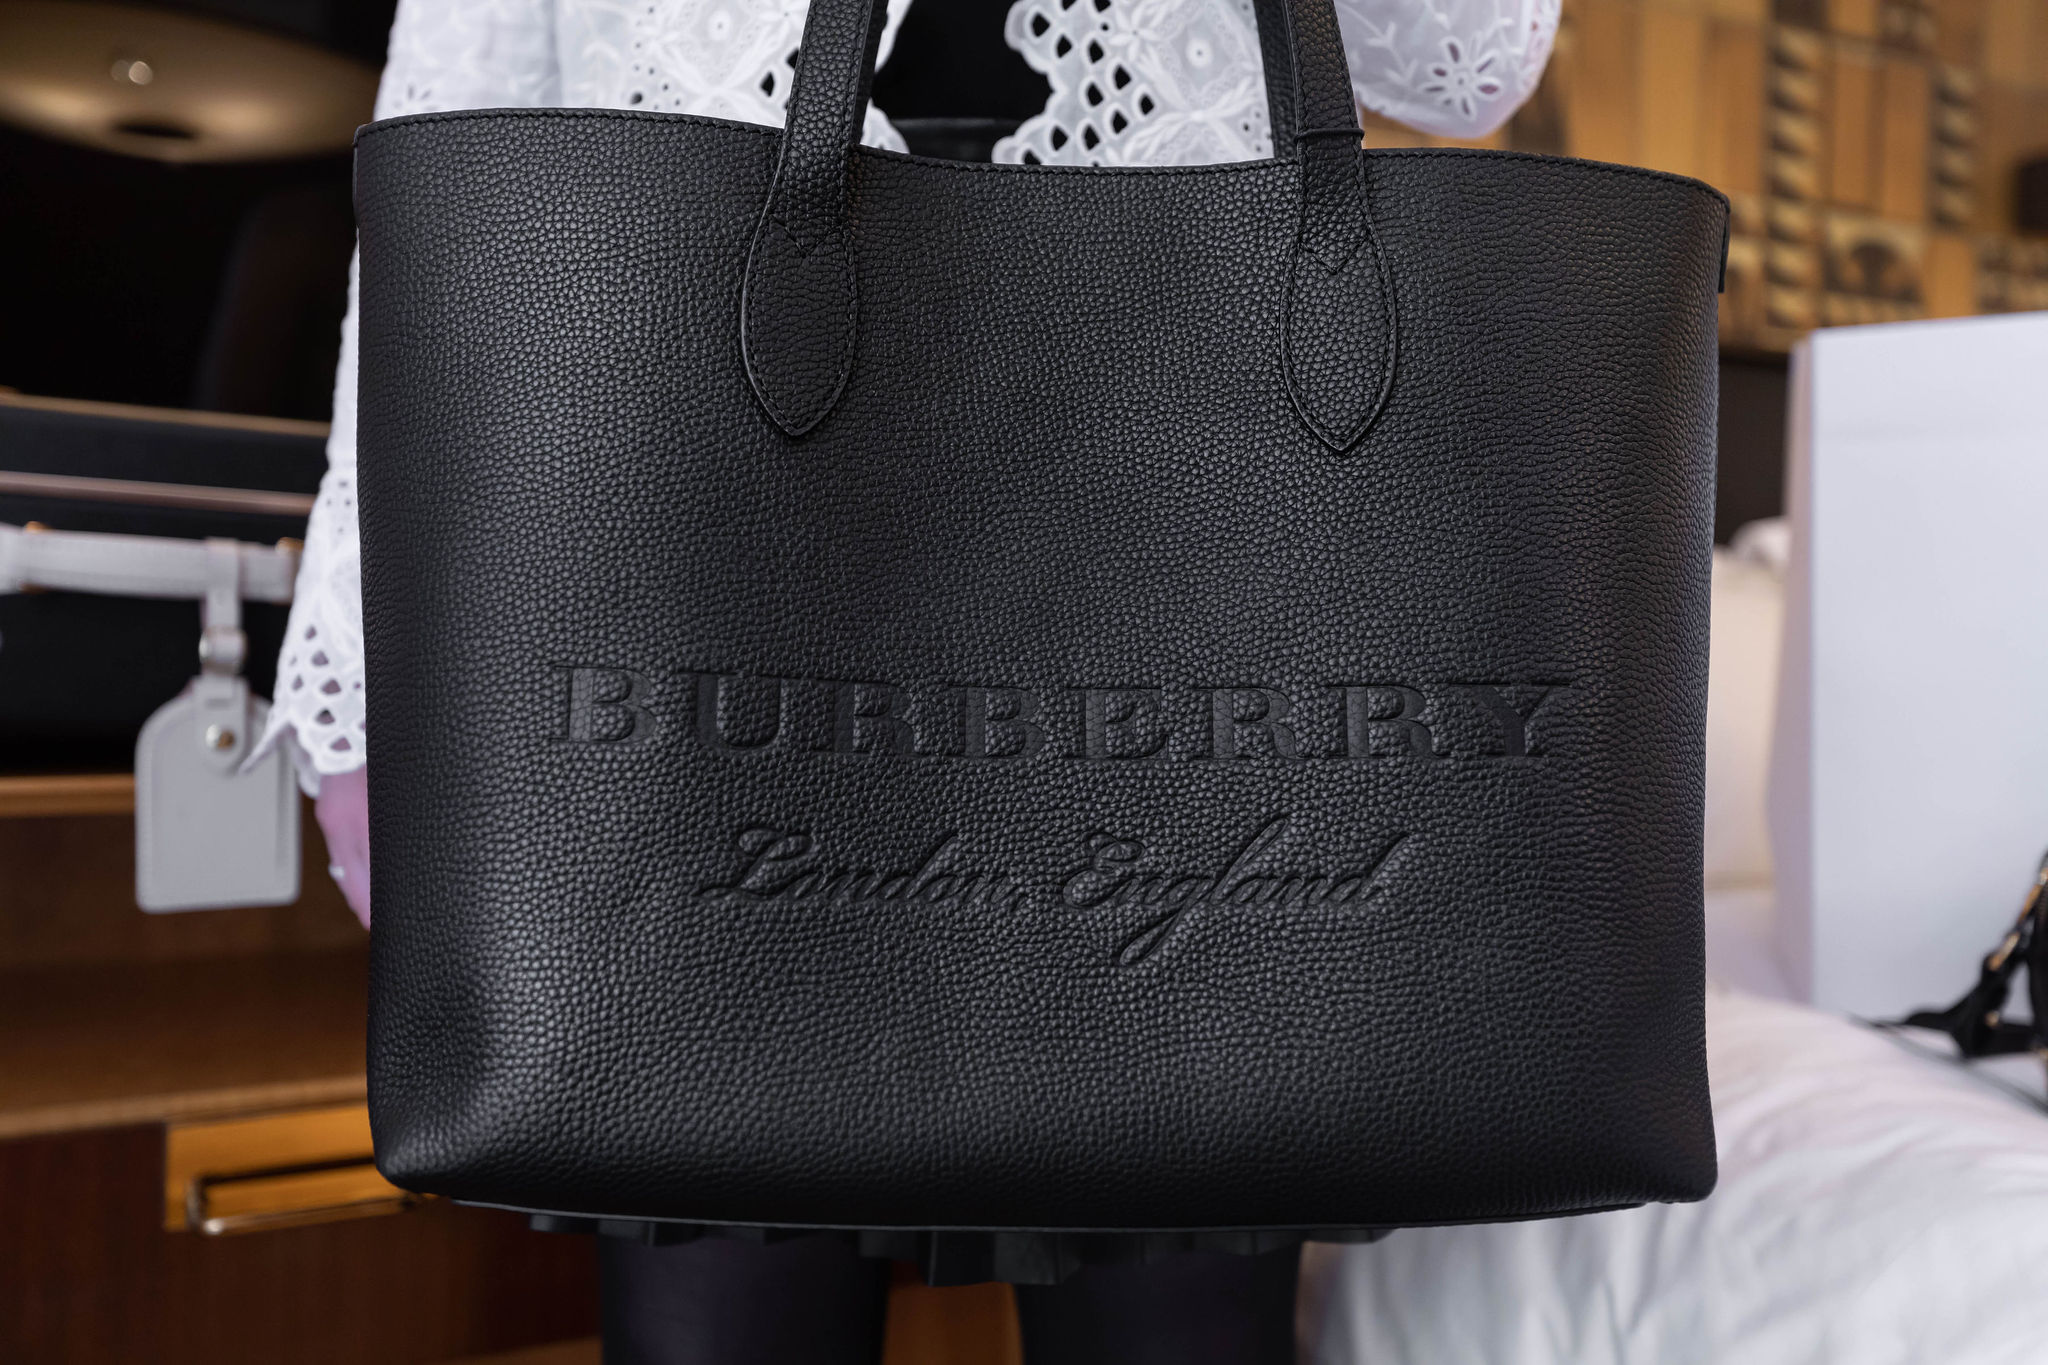 Burberry Remington Black Leather Tote Bag from Fashion Outlets of Chicago by Annie Fairfax